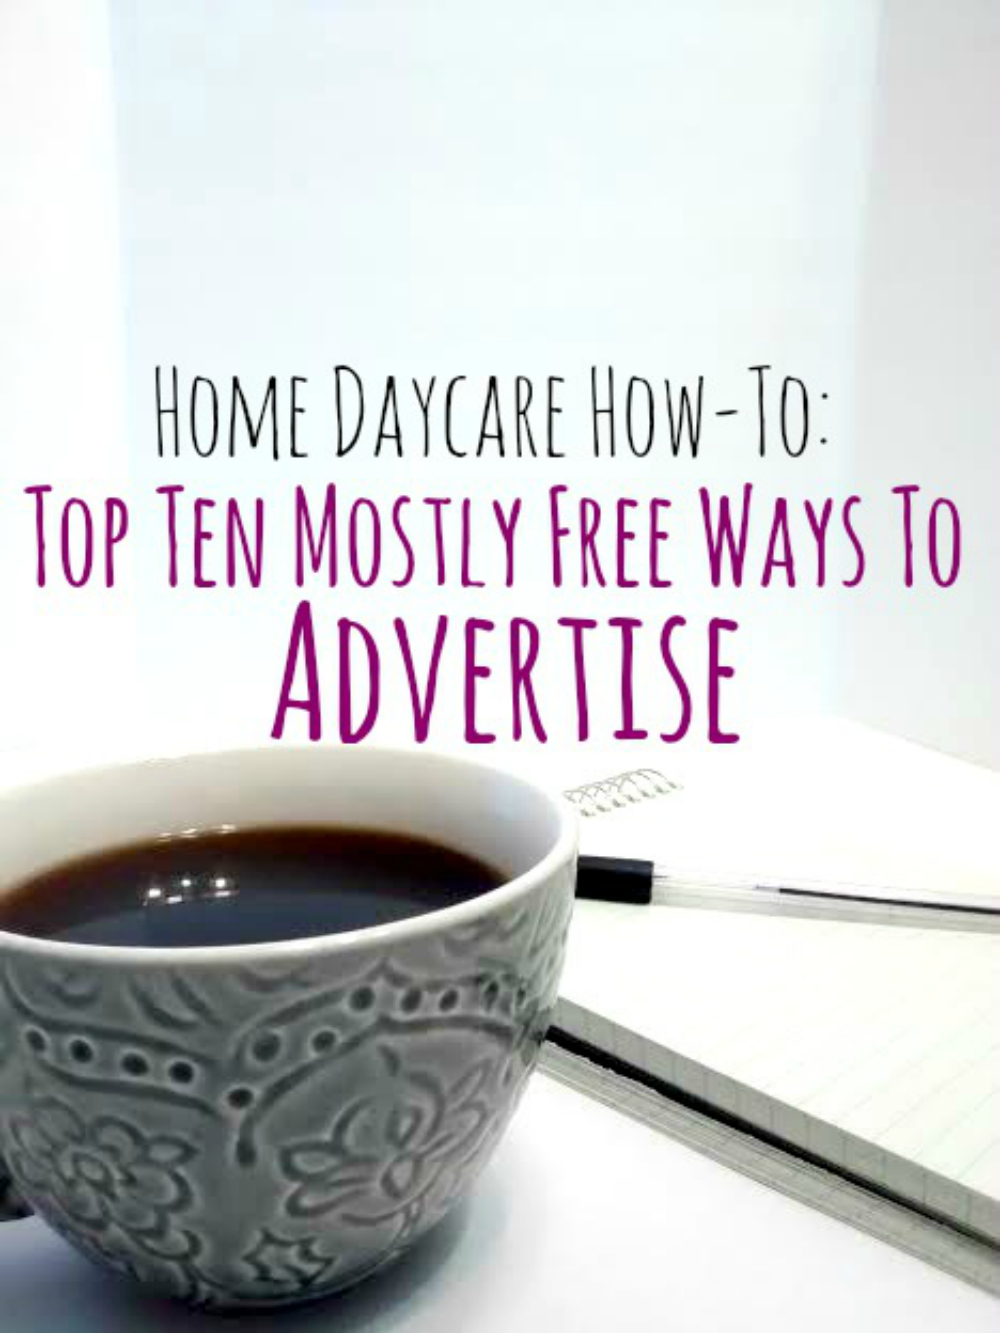 Home Daycare How To's: Top Ten Mostly Free Ways To